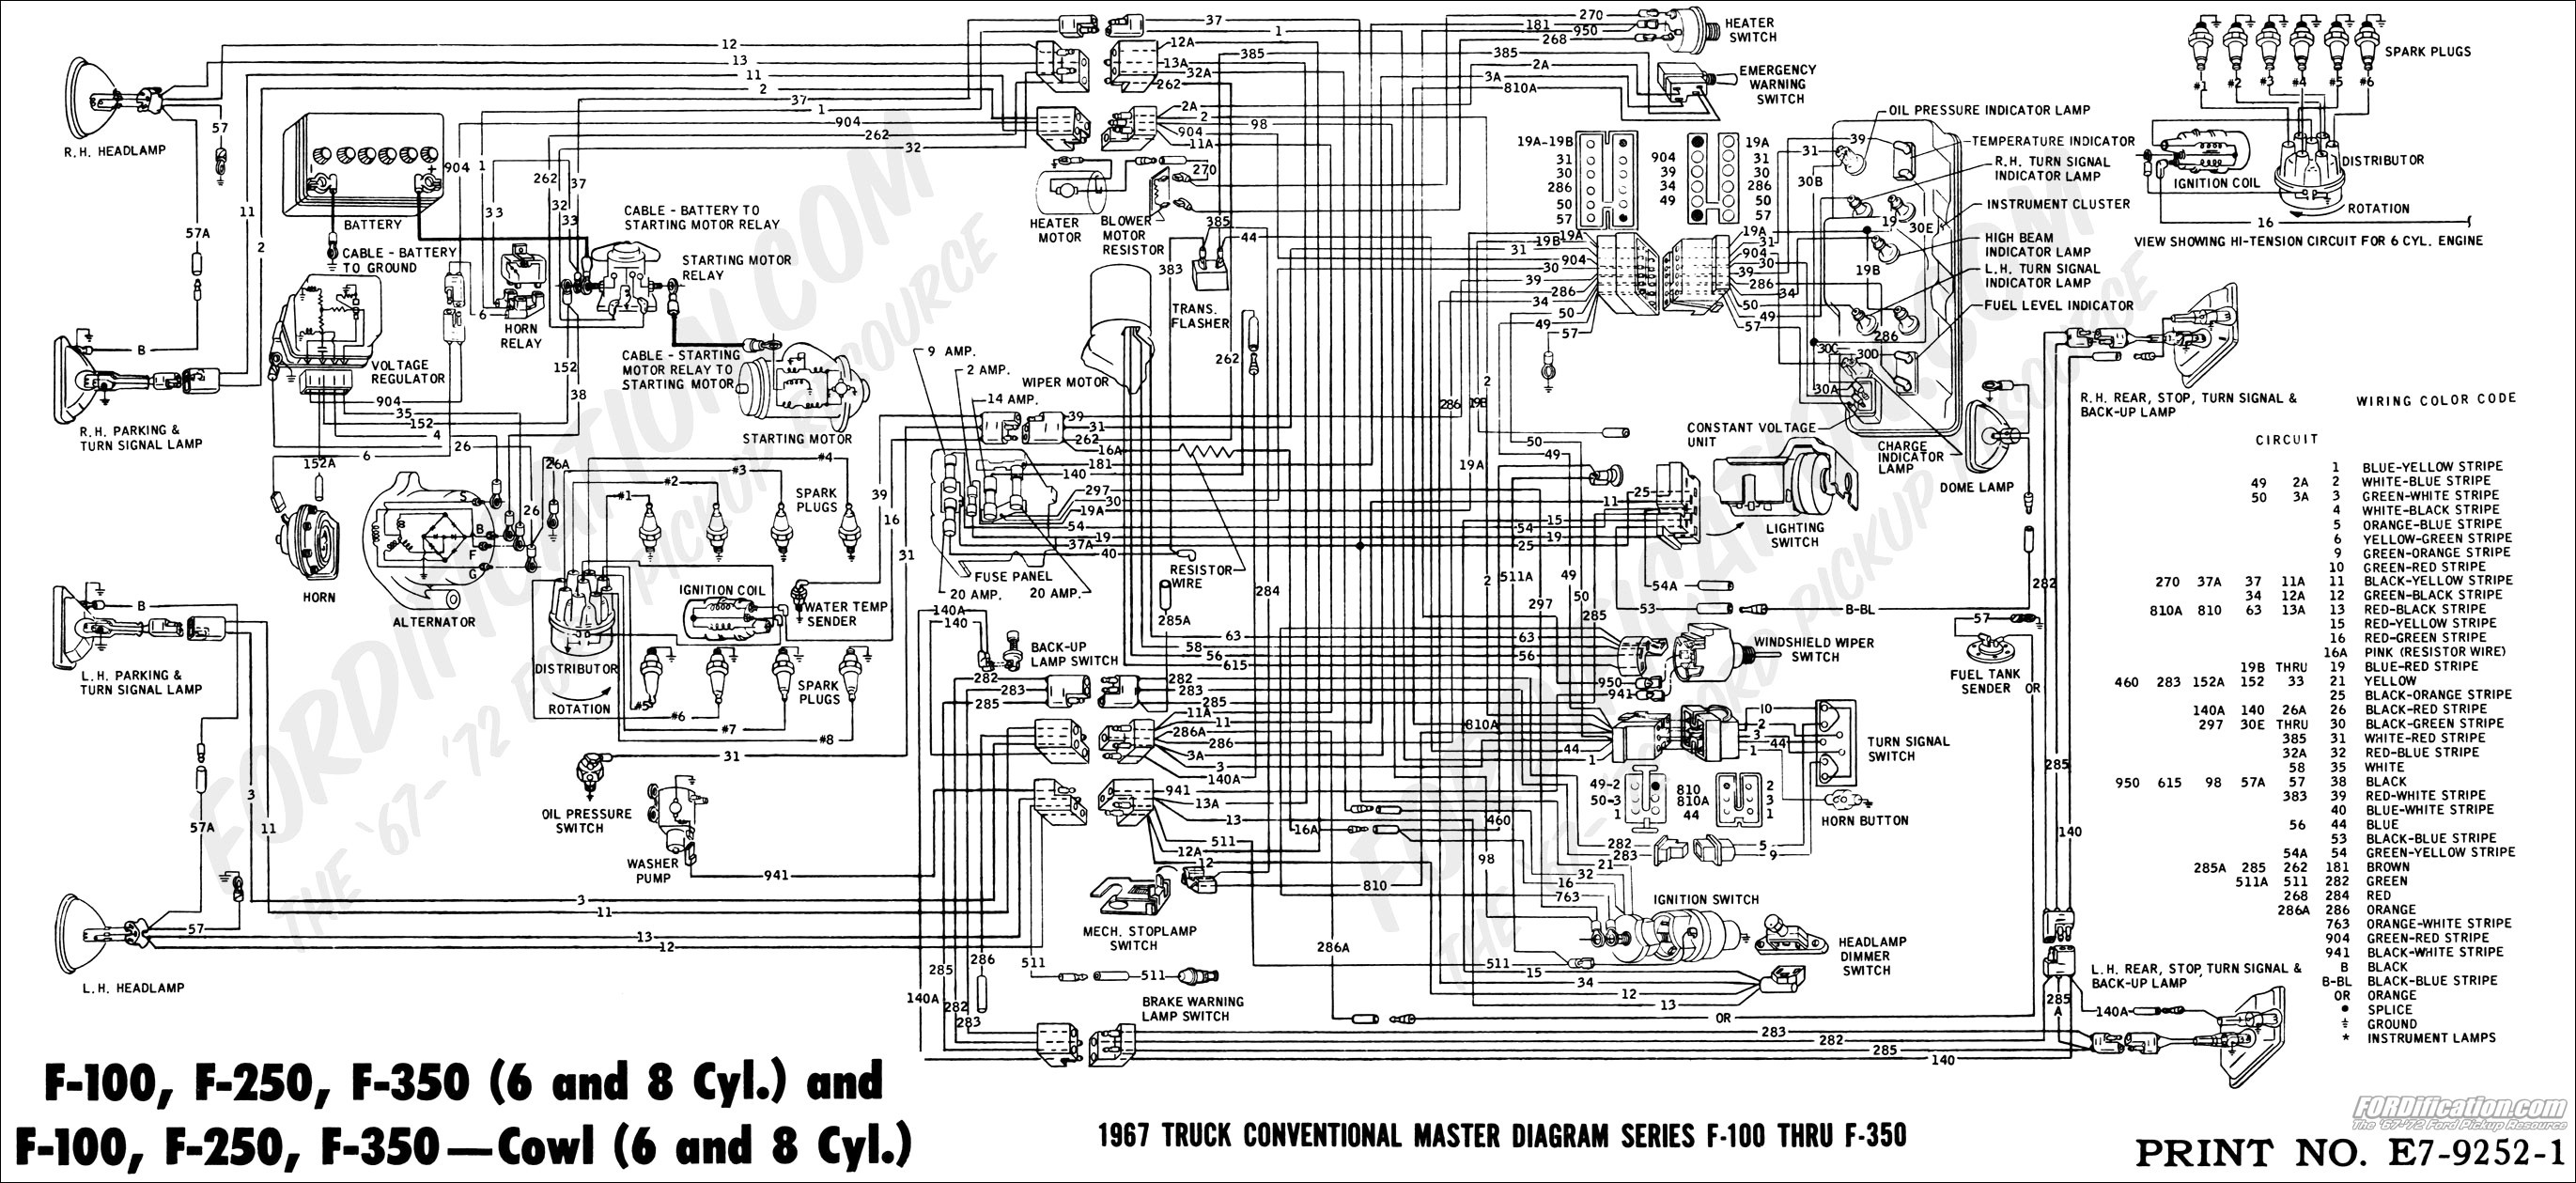 2000 Ford F150 Wiring Diagram Contour Radio 1990 Of